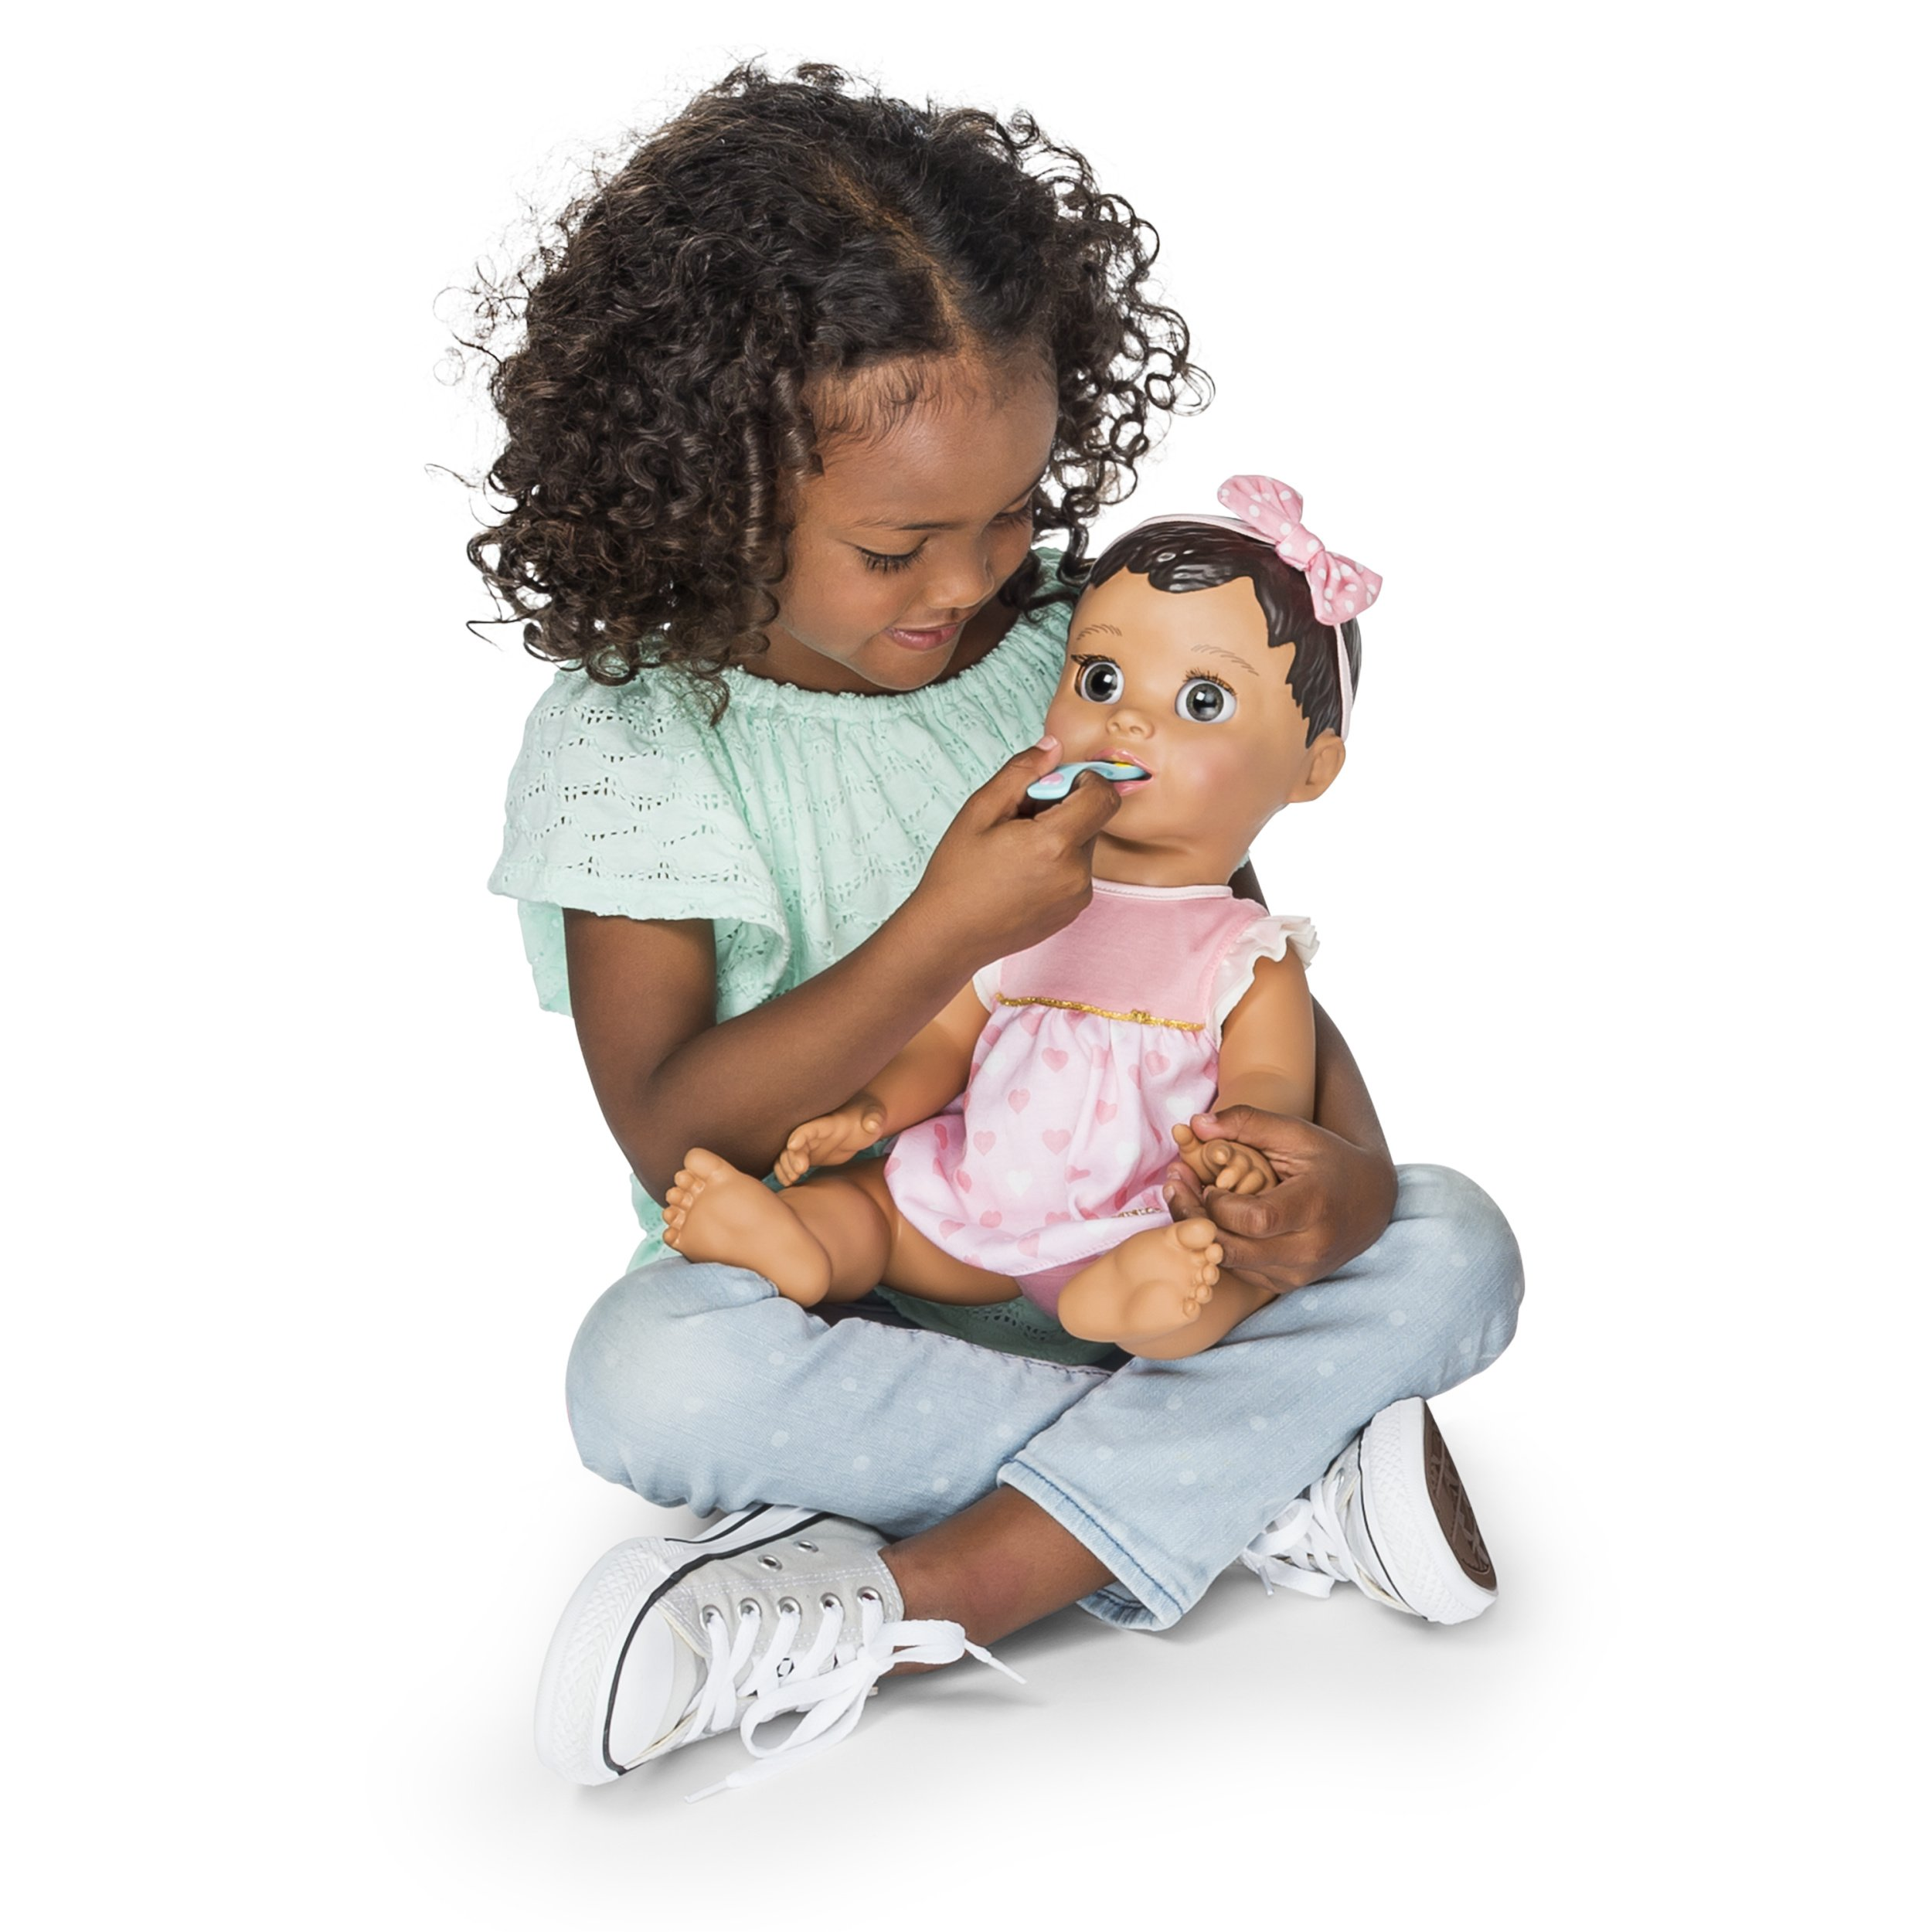 Luvabella Brunette Hair Responsive Baby Doll With Realistic